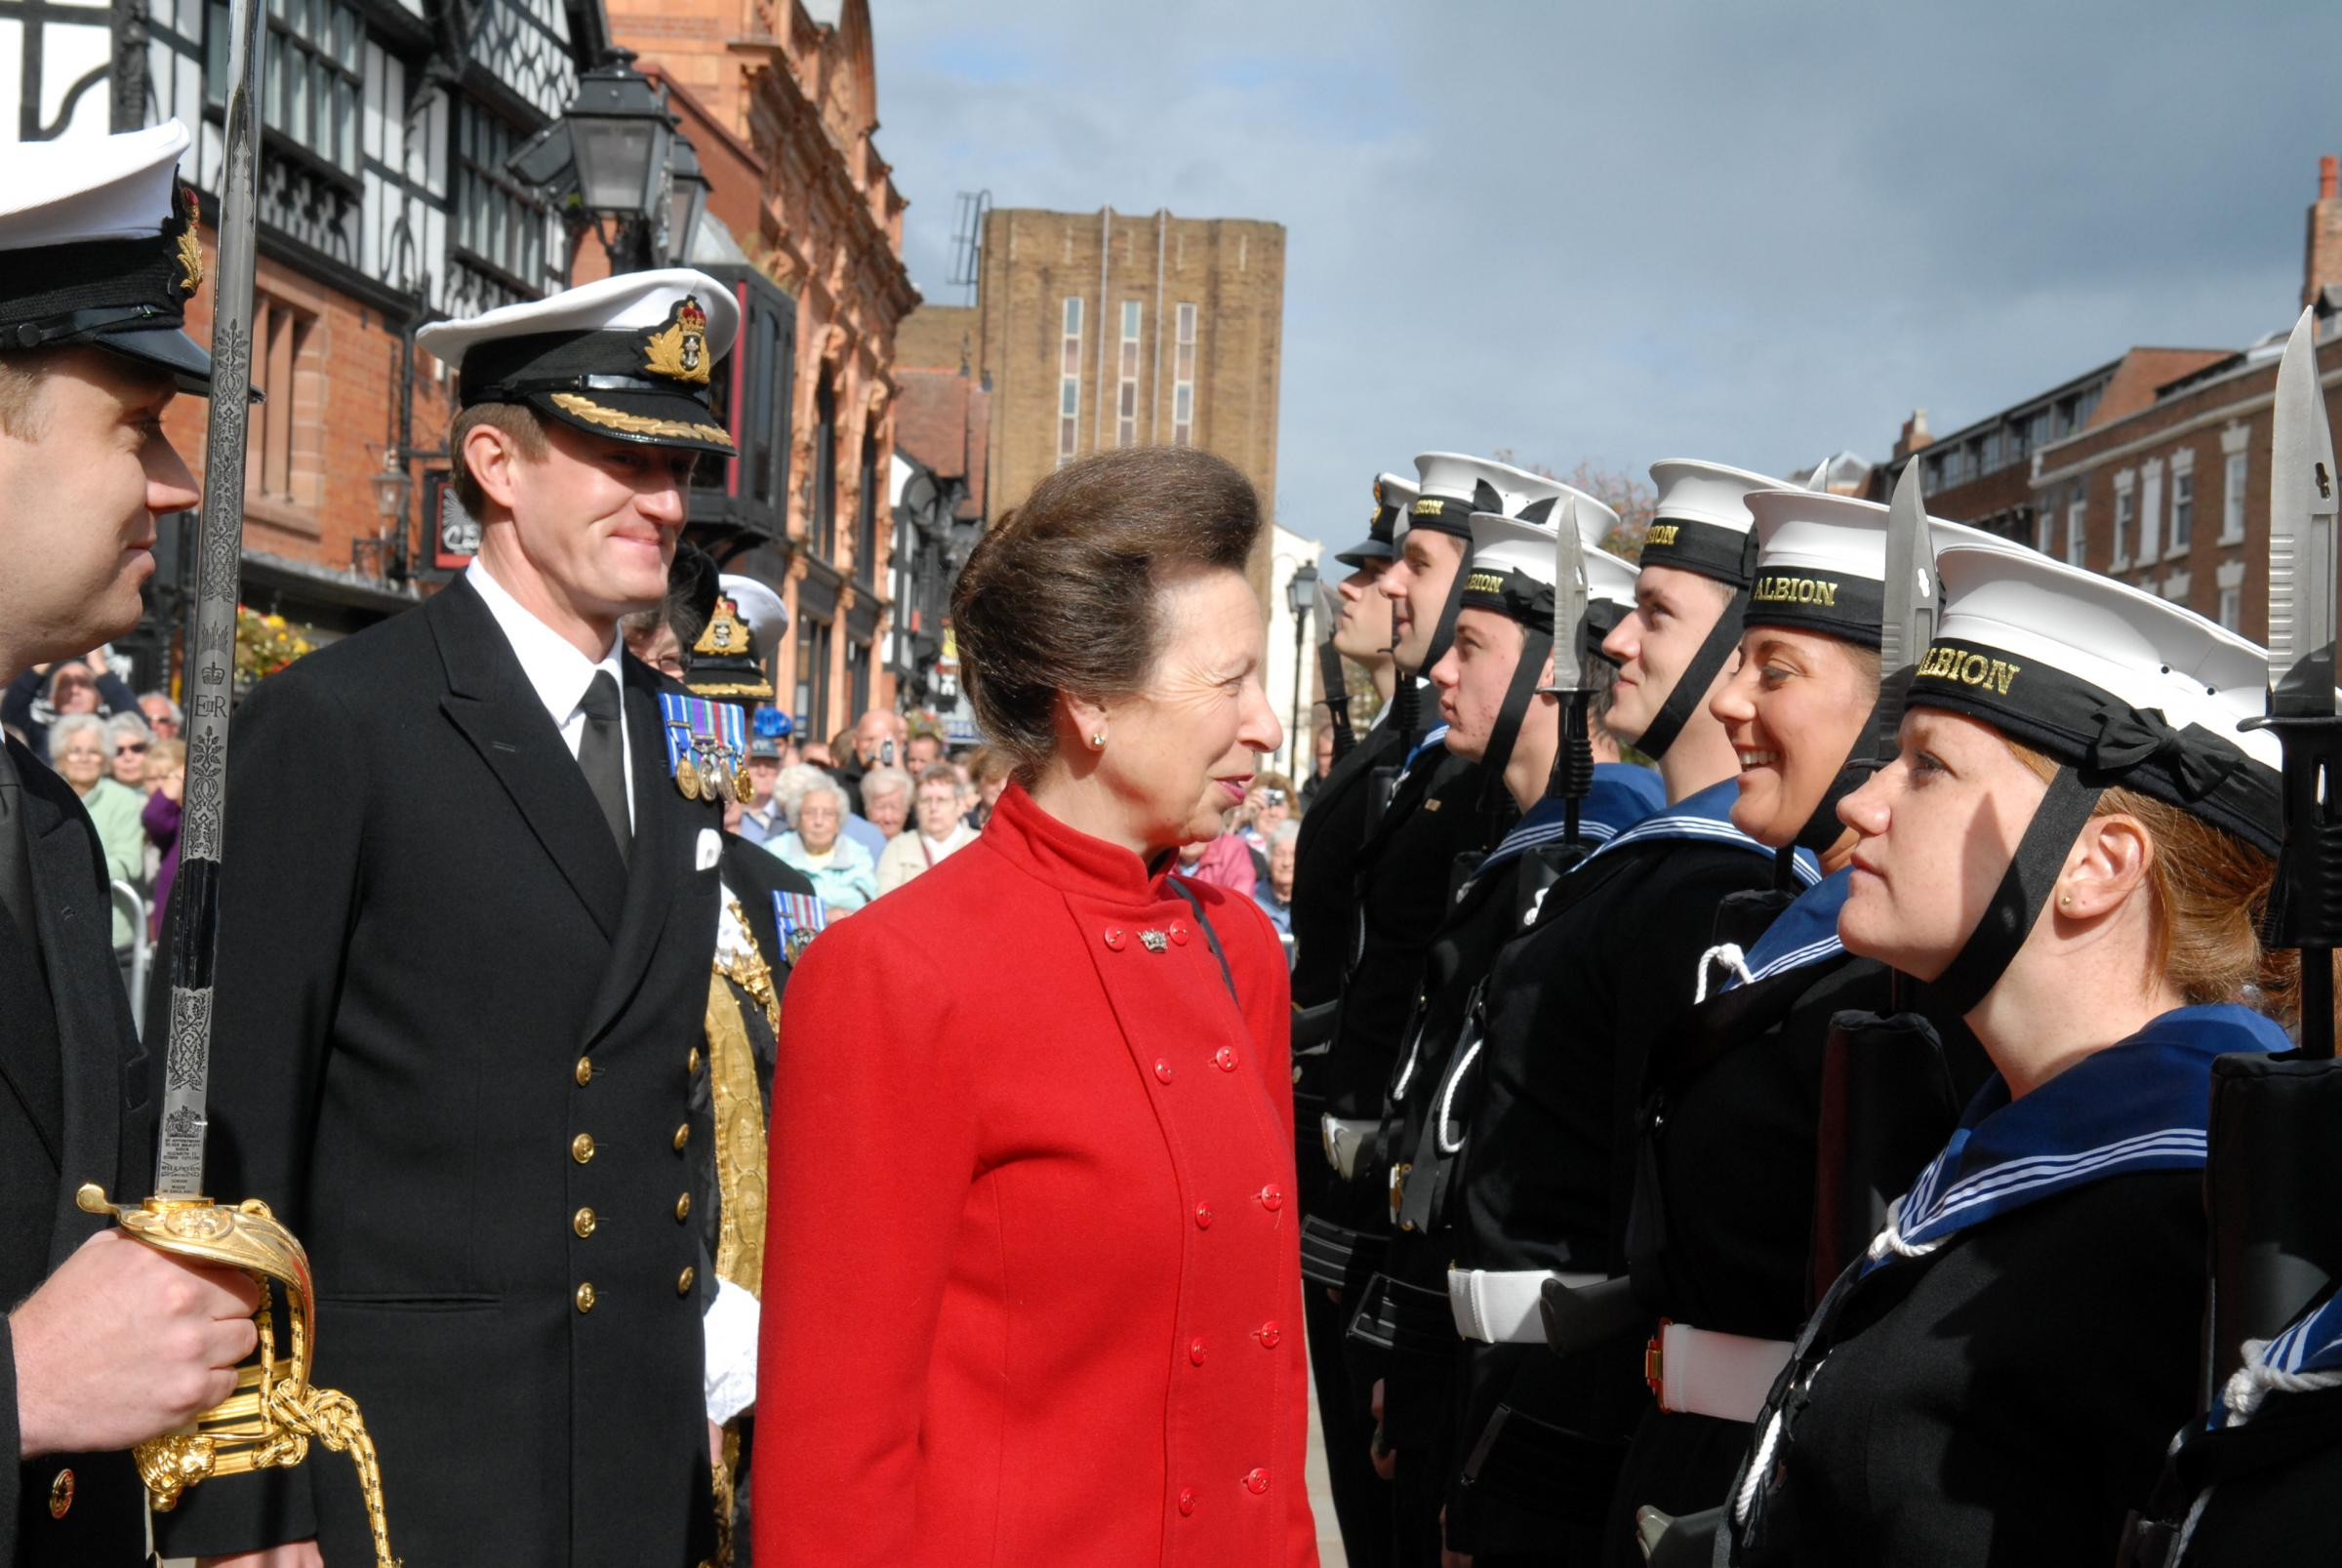 Royal visit as HMS Albion crew to parade through Chester: Full details and road closures